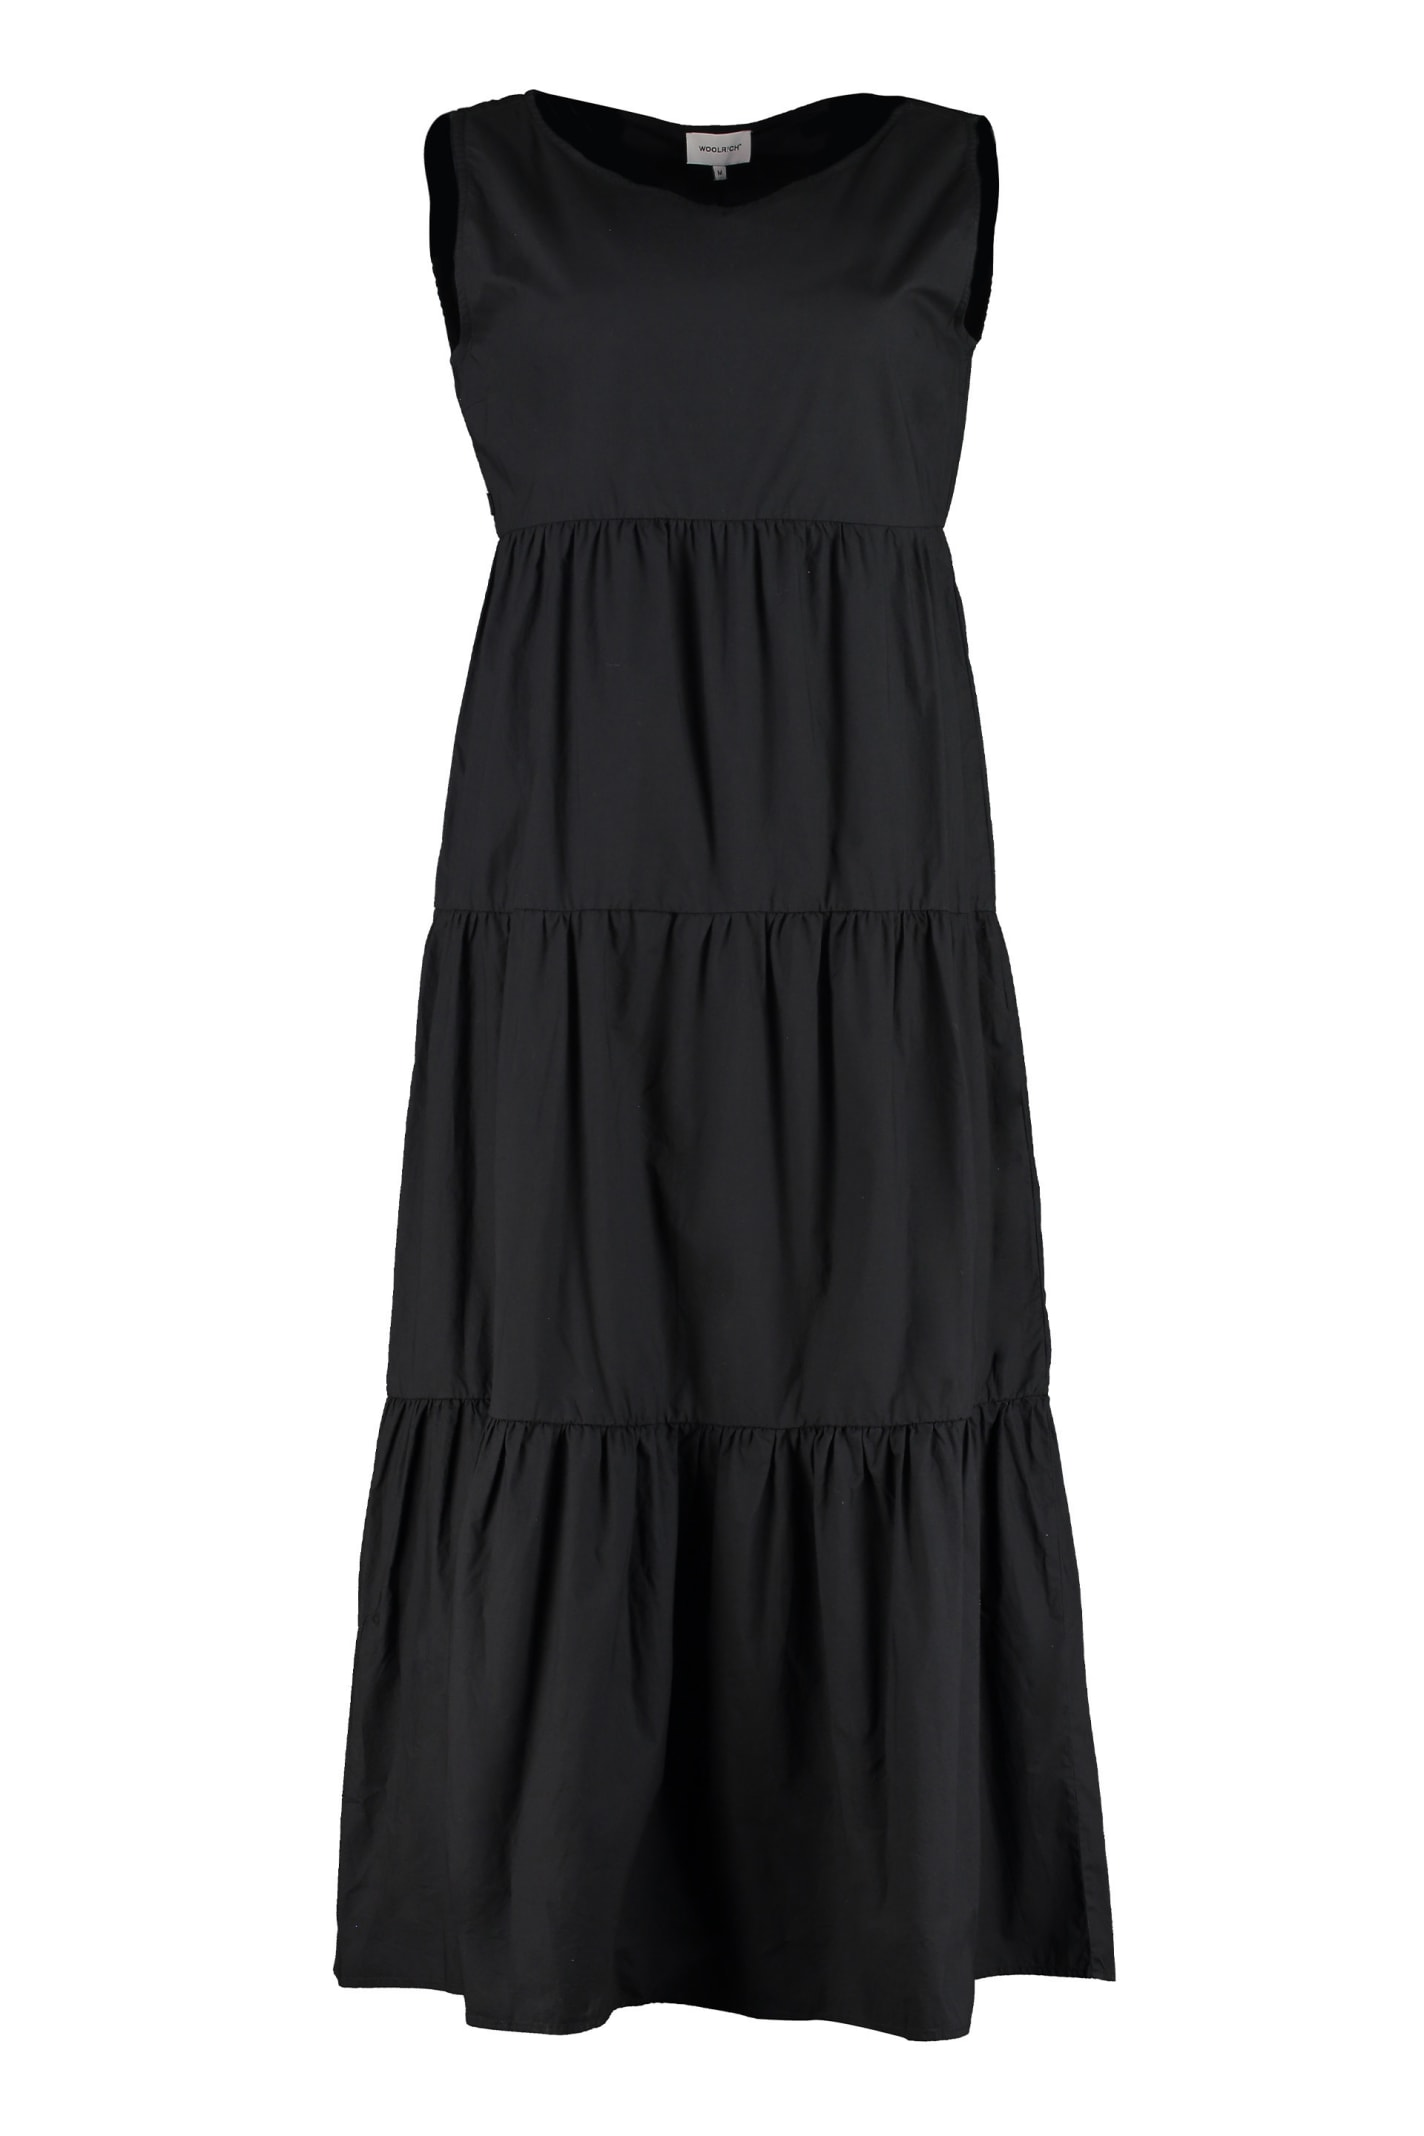 Buy Woolrich Ruffled Skirt Dress online, shop Woolrich with free shipping